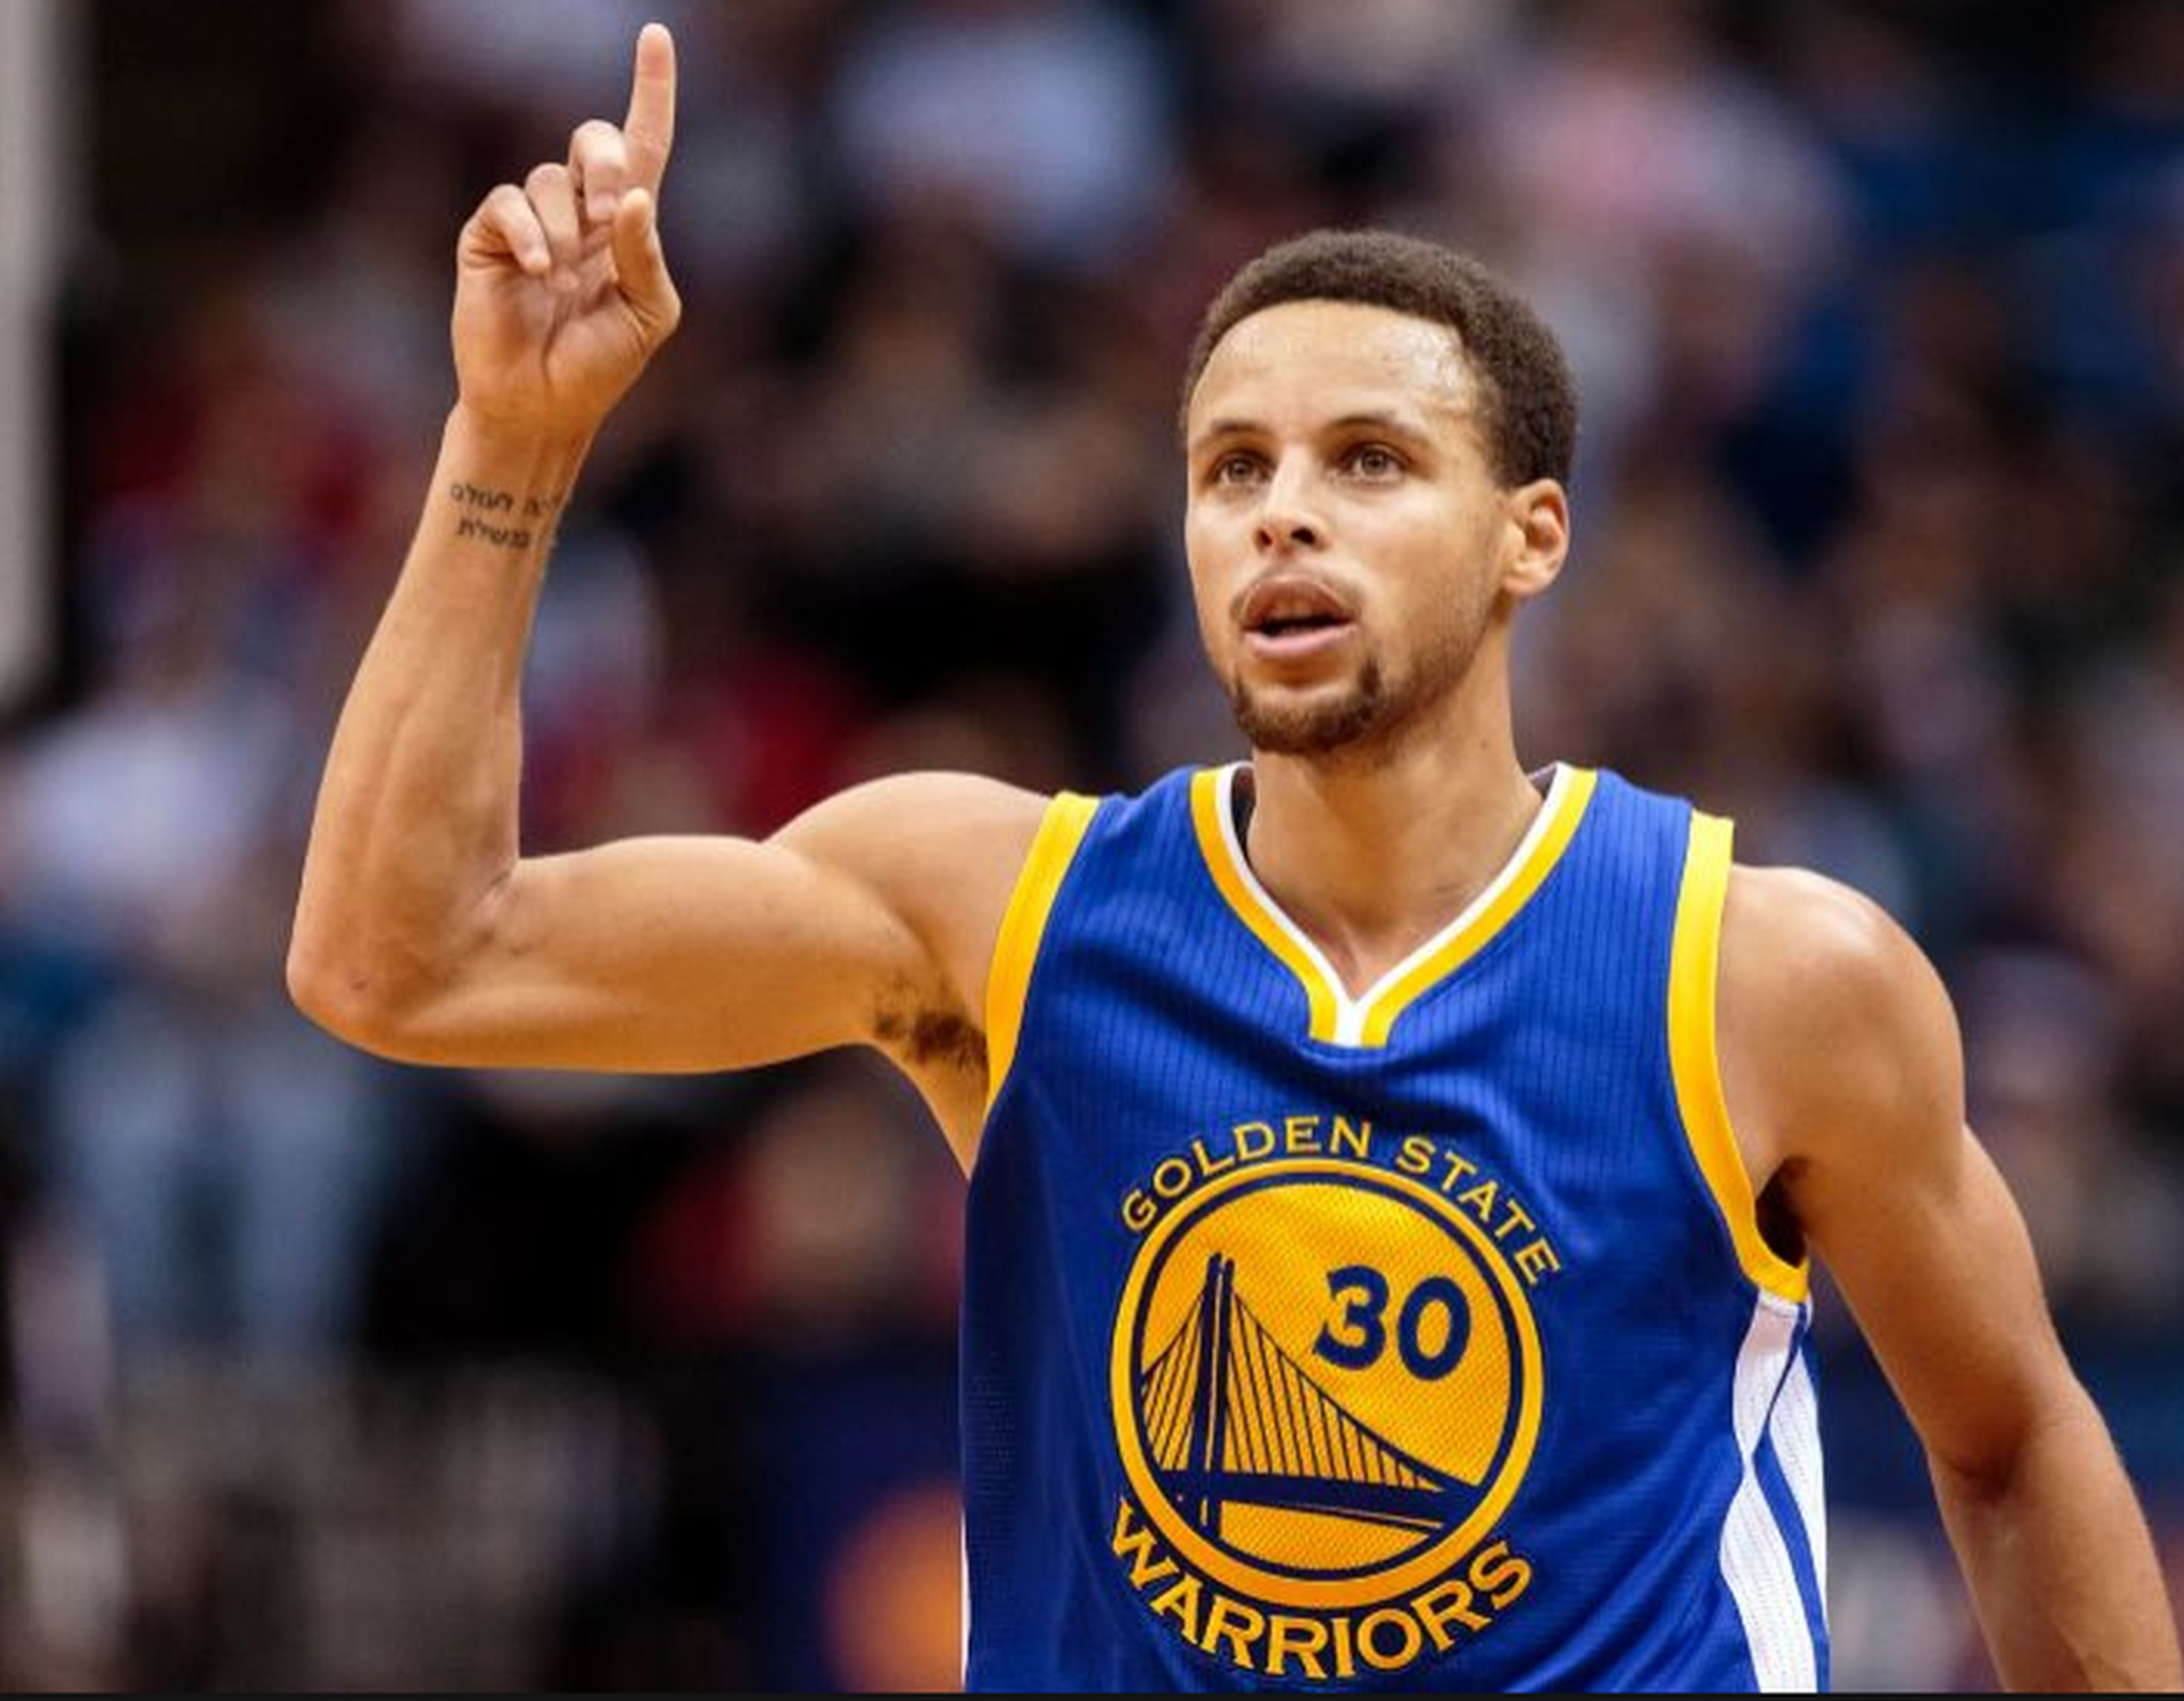 Golden State's perfect postseason run was stopped Friday as the Cleveland Cavaliers defeated the Warriors 137-116 in Game Four of the NBA Finals. Golden State still leads the series 3-1 and is one win away from the championship. AP WIREPHOTO